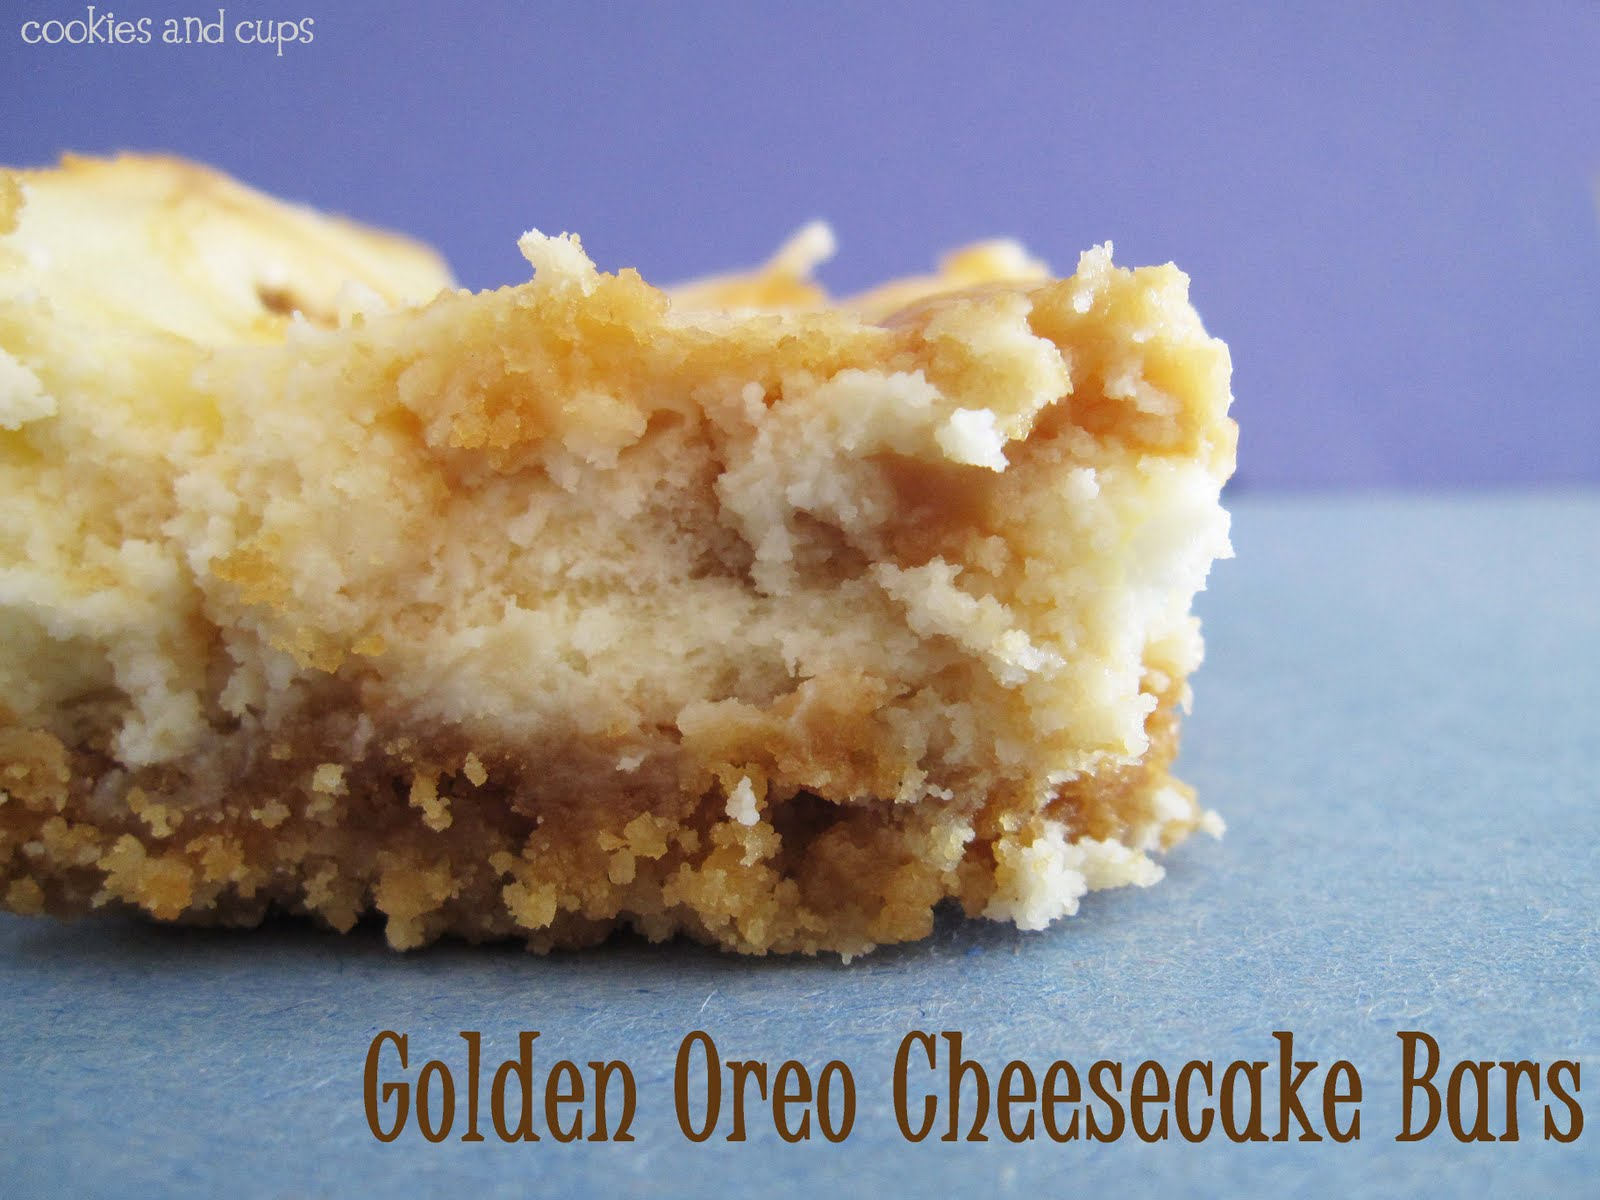 Golden Oreo Cheesecake Bars Cookies and Cups